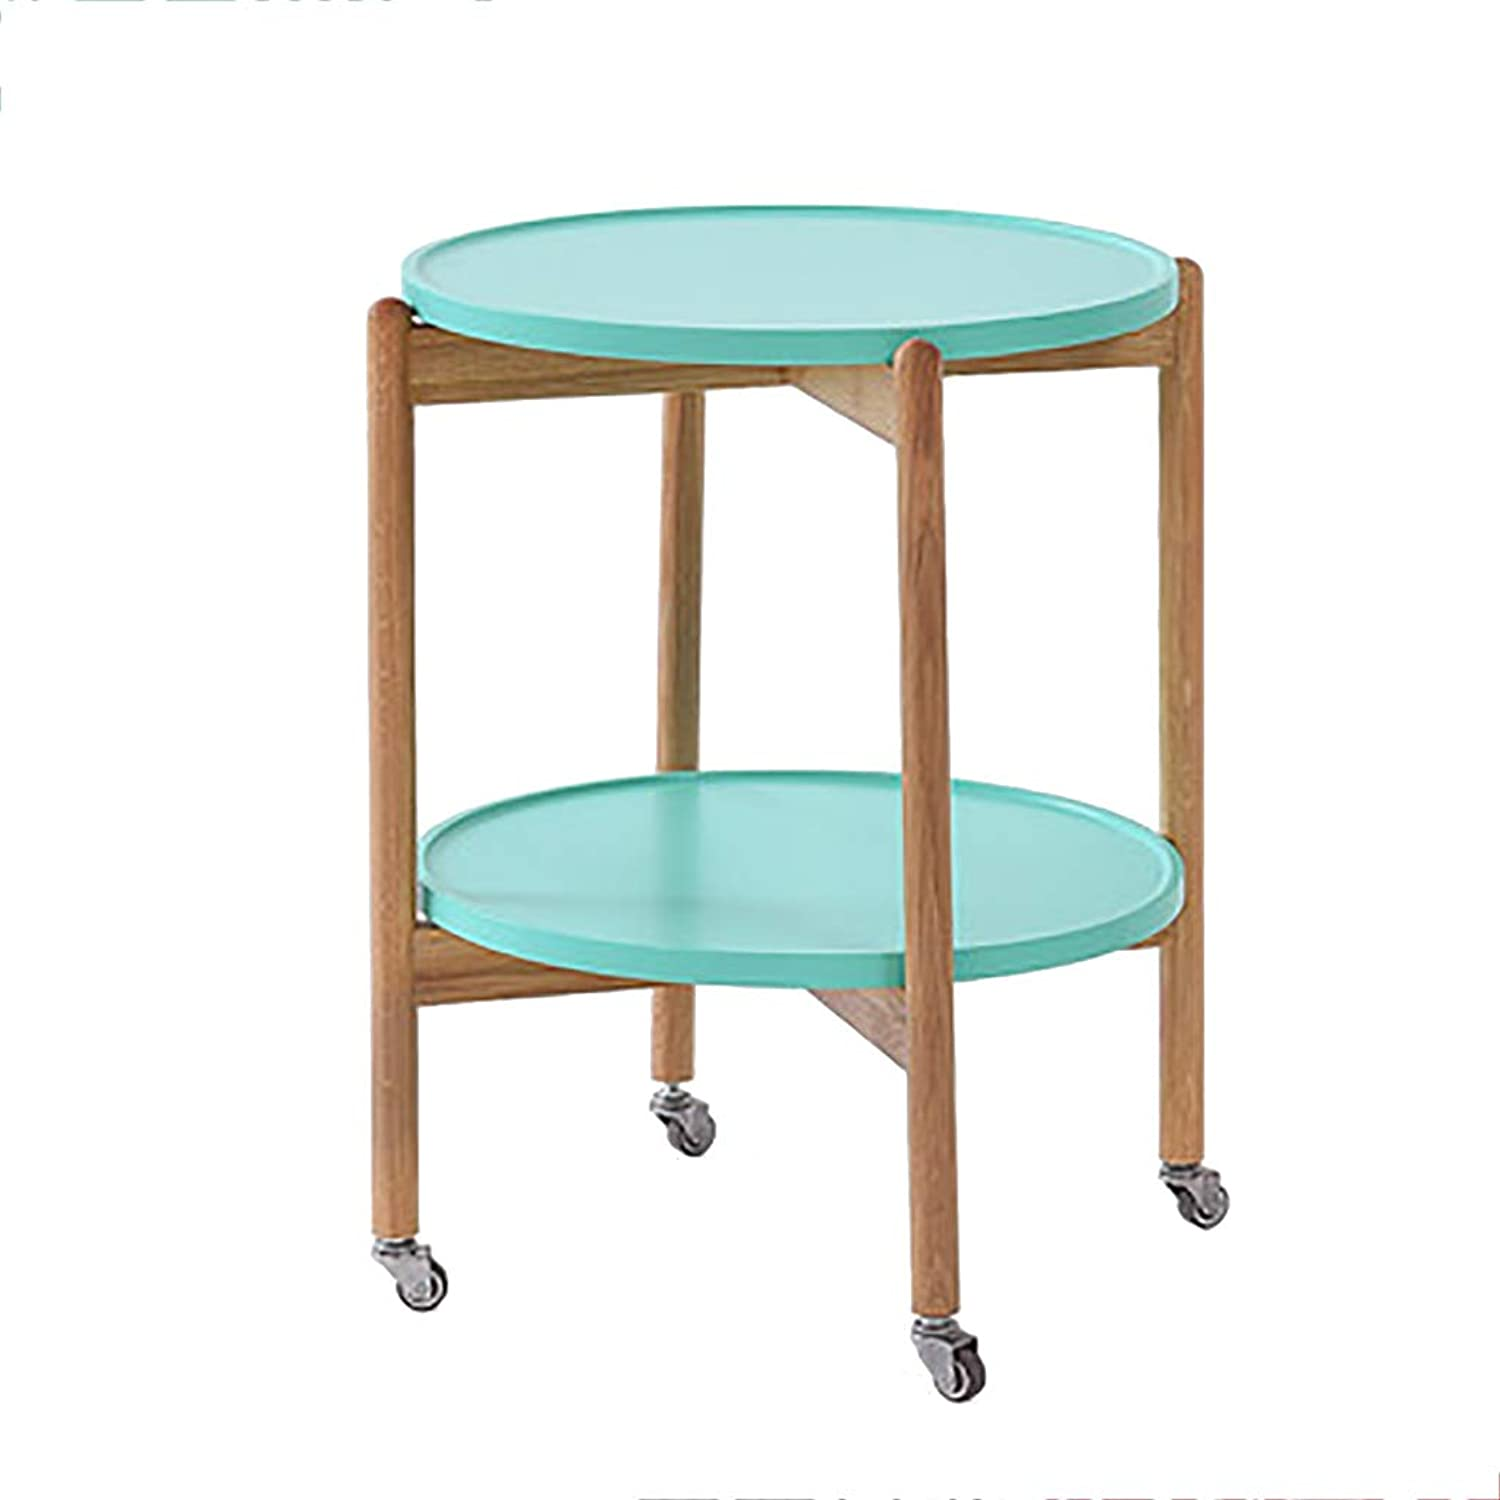 Tea Cart Serving Trolley with Wheel 2 Tier Beech Wood Kitchen Island Dining Service Cart for Family Hotel